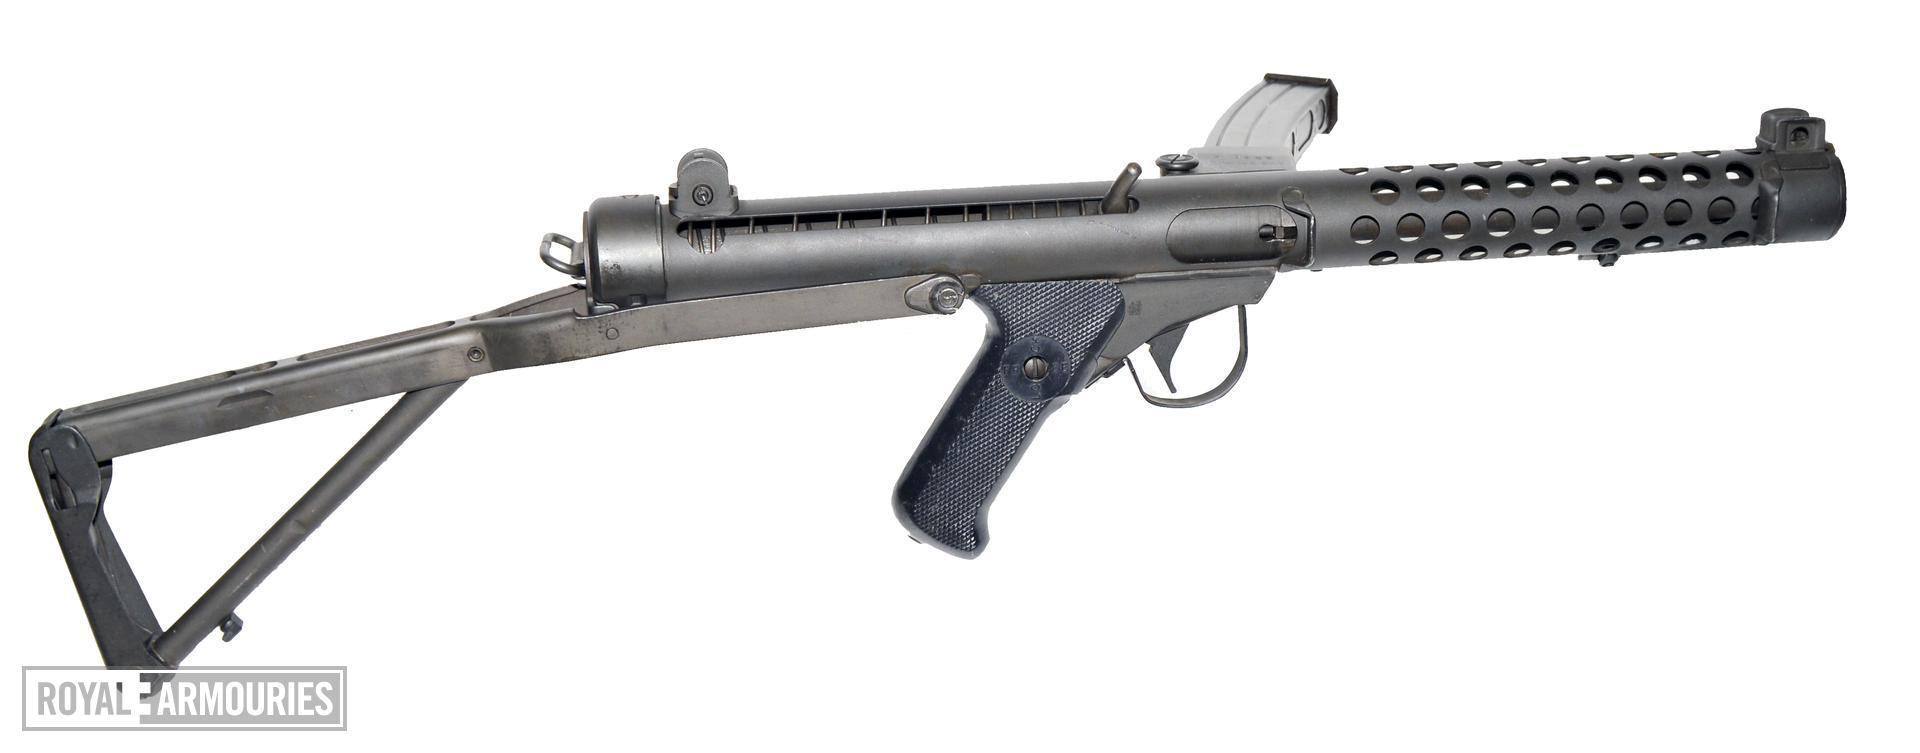 Canadian SMG 9 mm C1 with stock extended. PR.7598